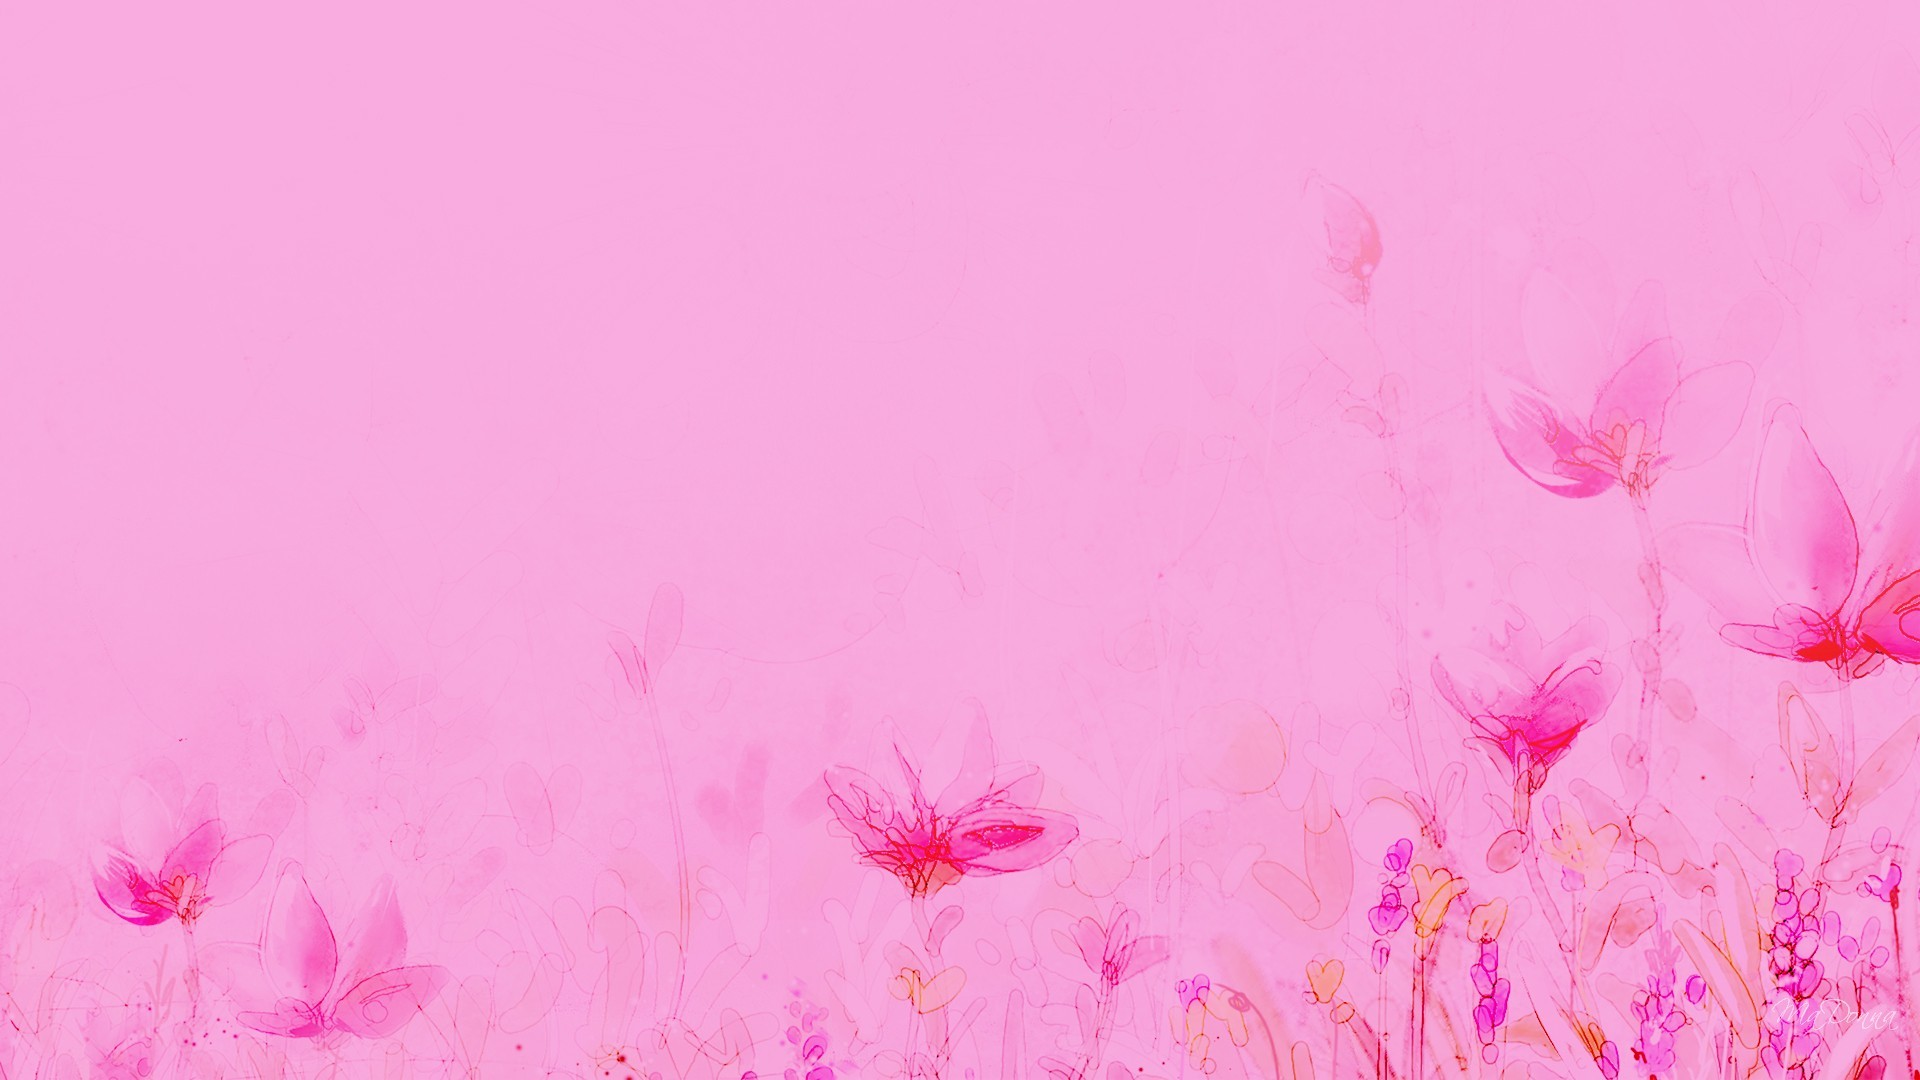 1920x1080 Wallpapers For > Light Pink Floral Wallpaper